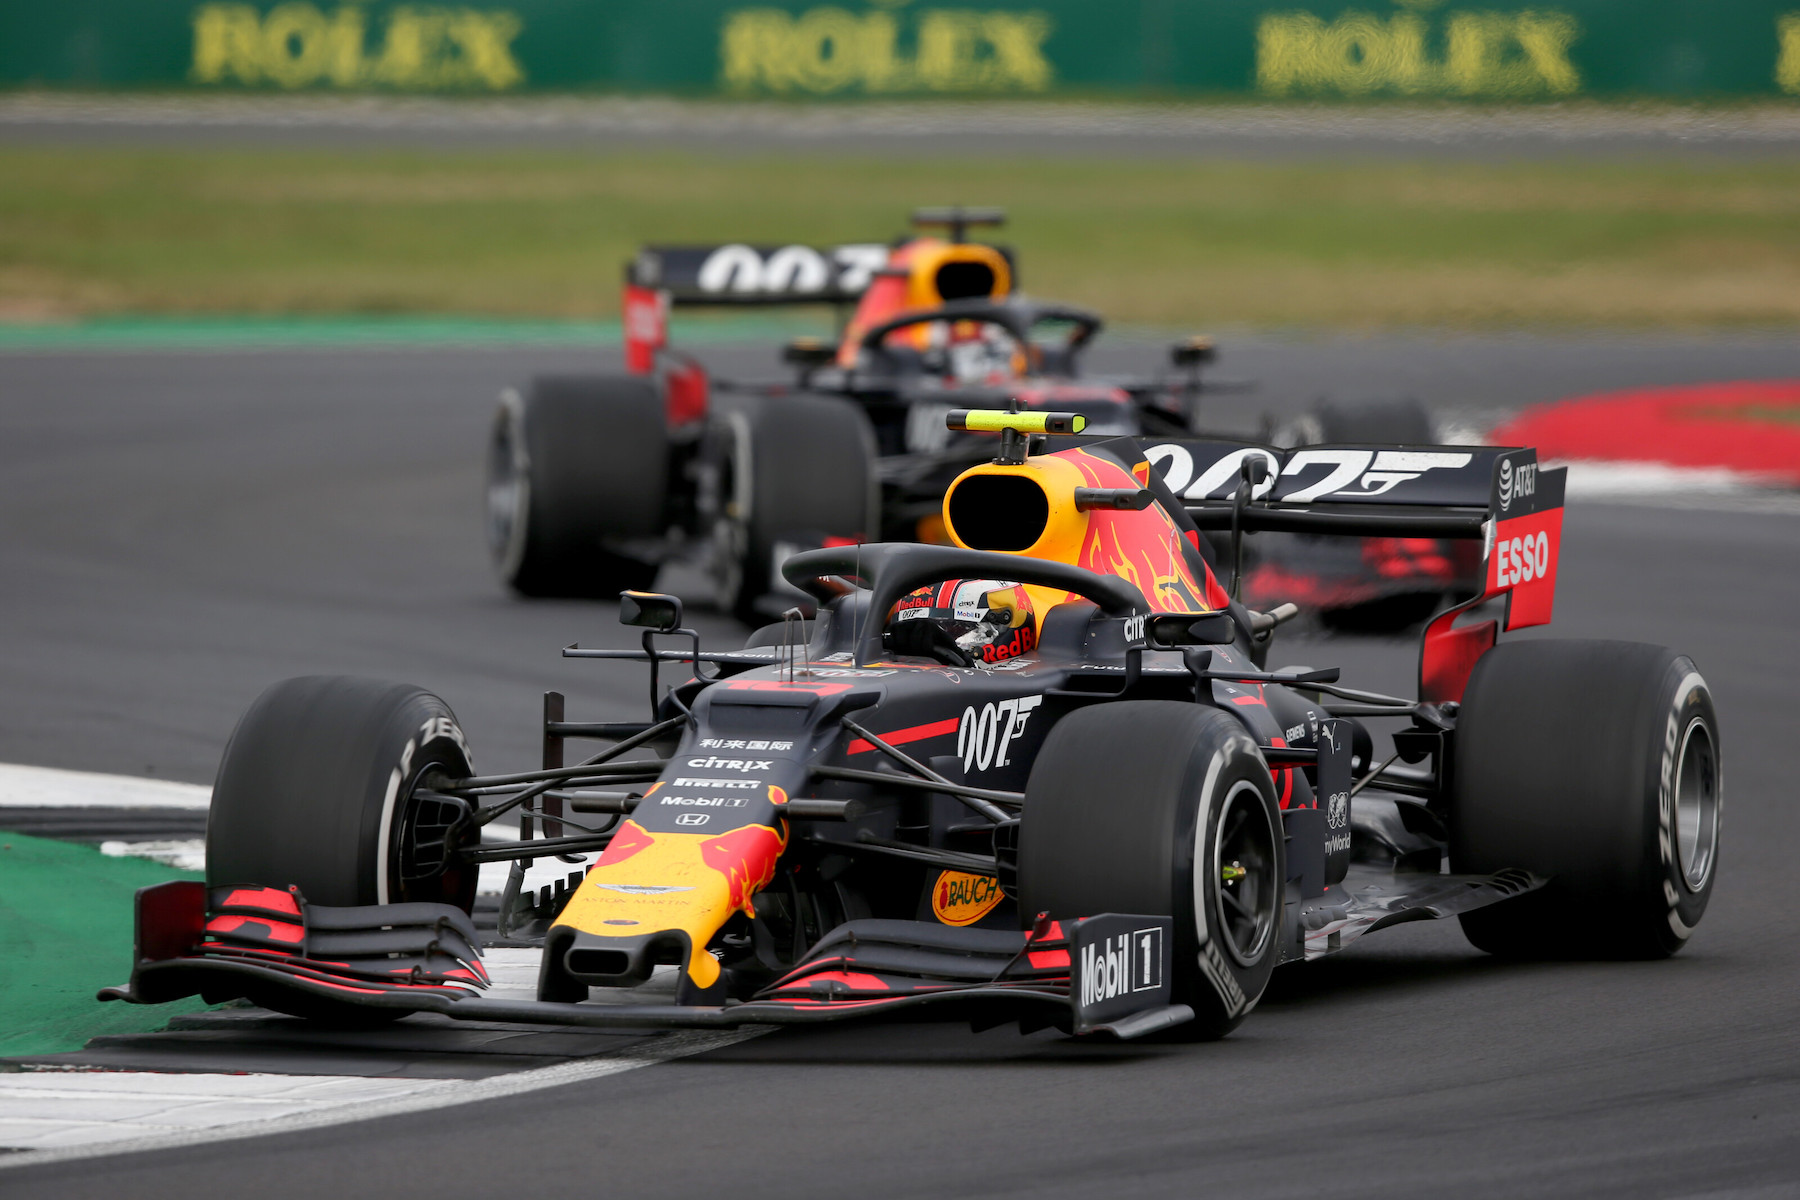 6 F 2019 British Grand Prix Sunday 31.jpg